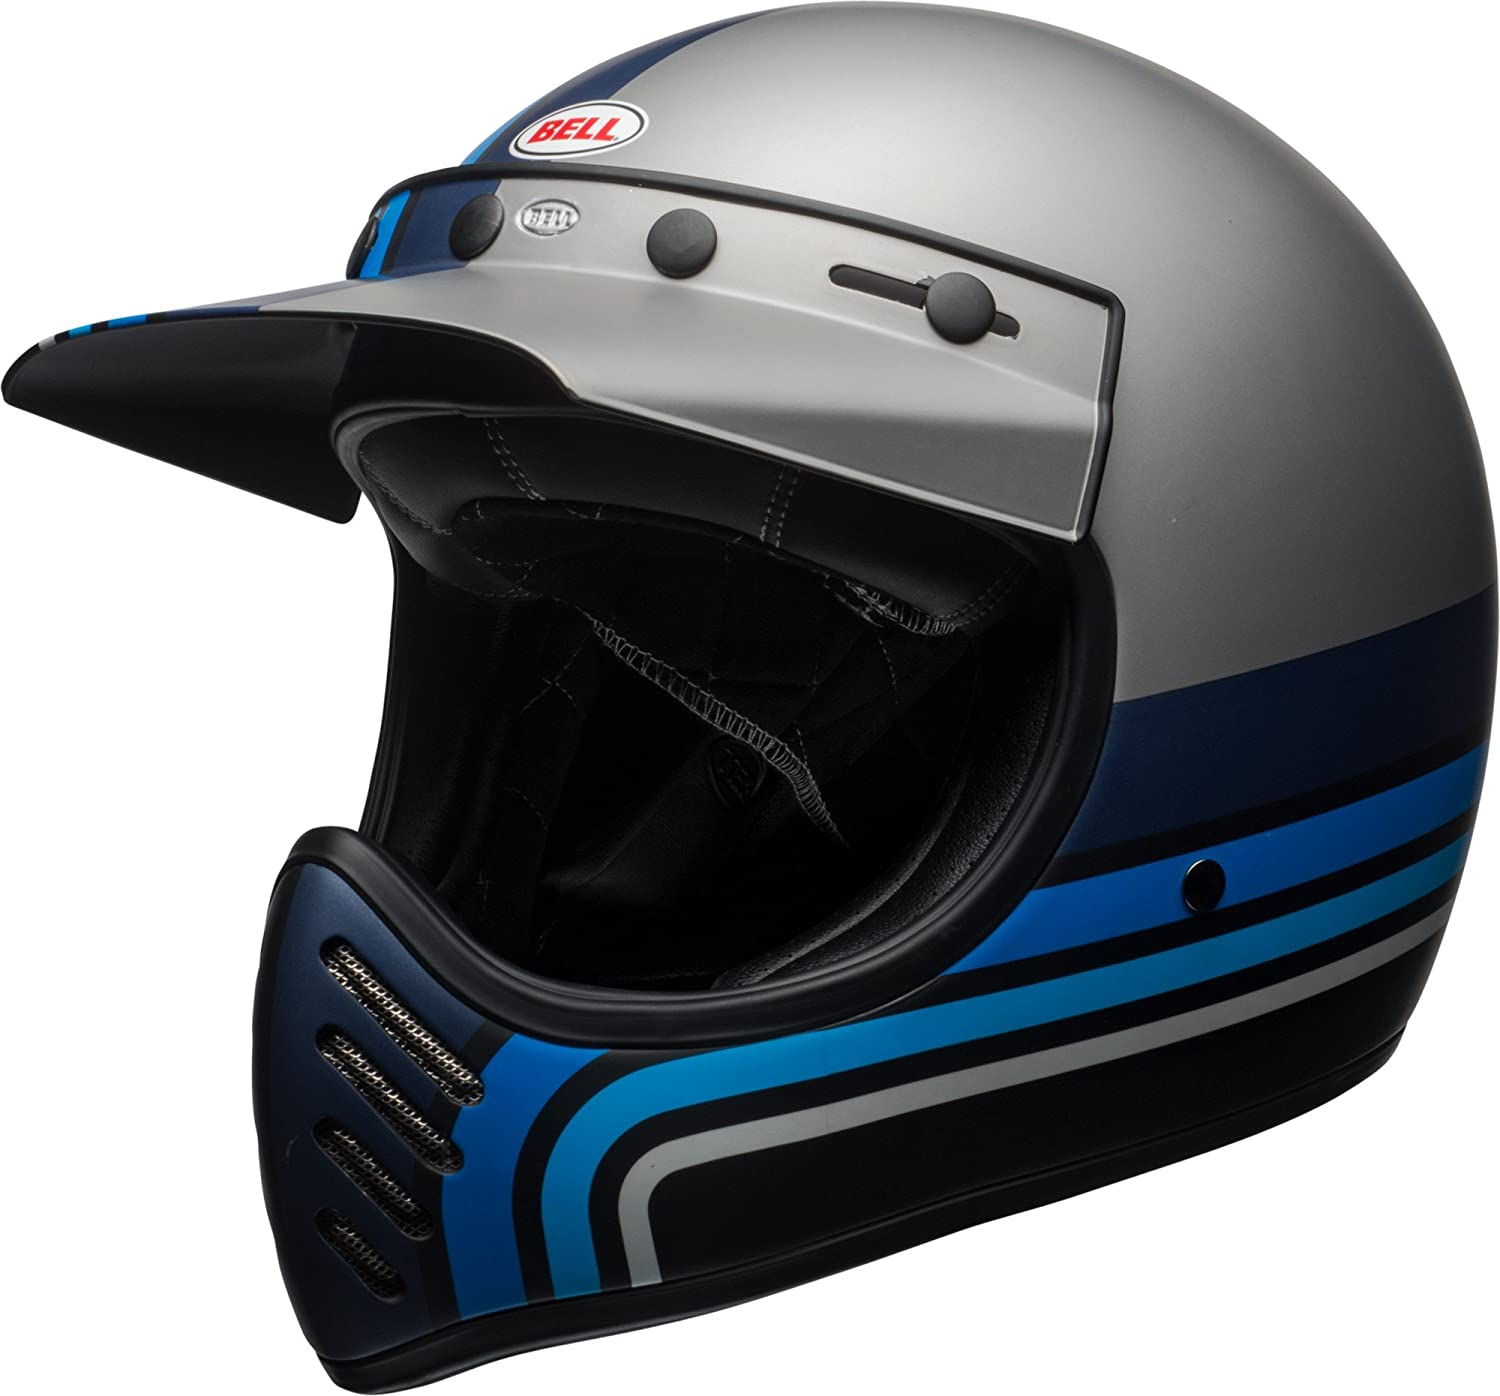 Amazon.com: Bell Moto-3 Off-Road Motorcycle Helmet (Matte Silver/Black/Blue Stripes, Medium): Automotive